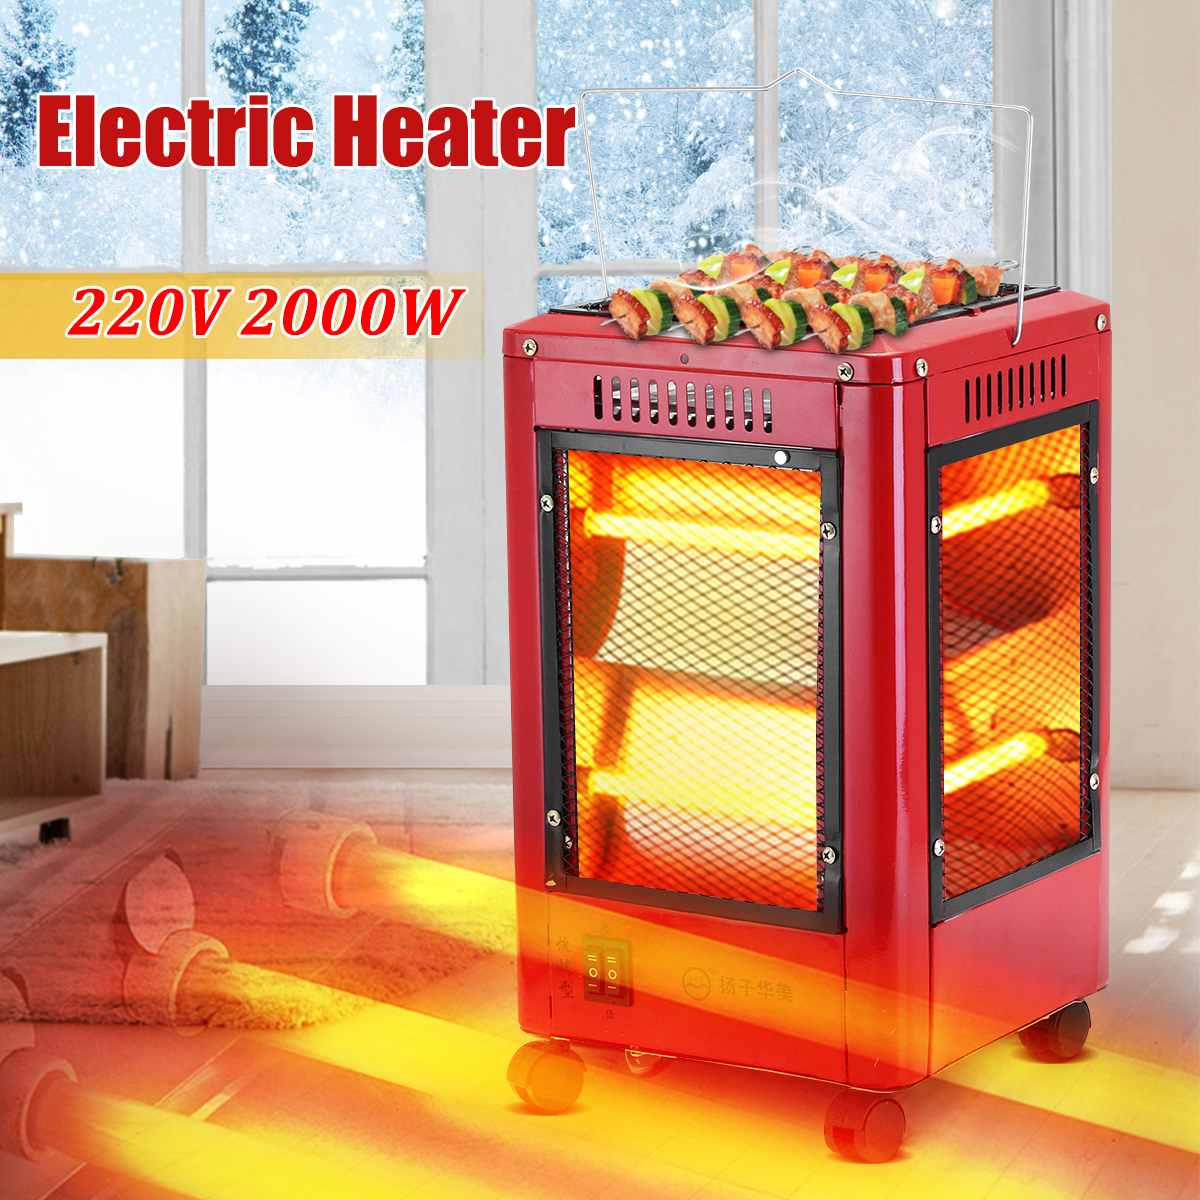 220V 2000W Five Sided Electric Heater Mutifuction Household Warmer Energy Saving Heater Oven Grill Type Household Heater